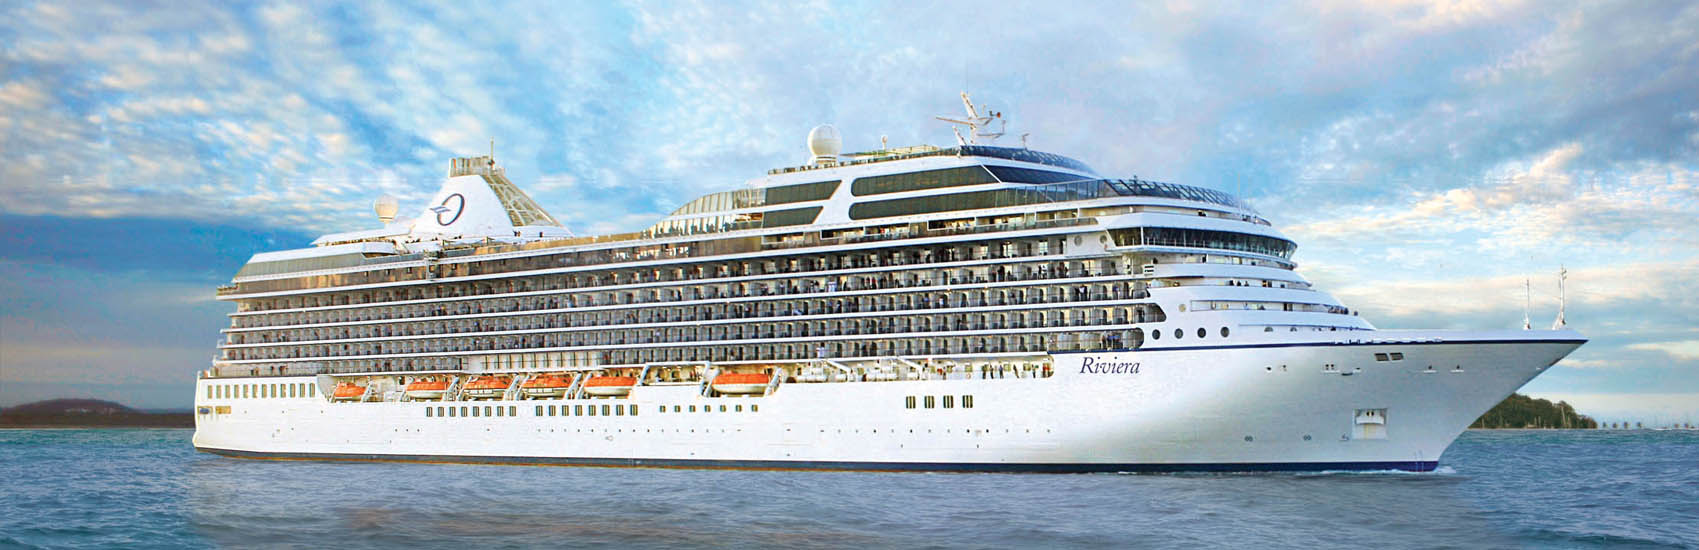 Canadian Resident 10% Savings on select Oceania Cruises voyages